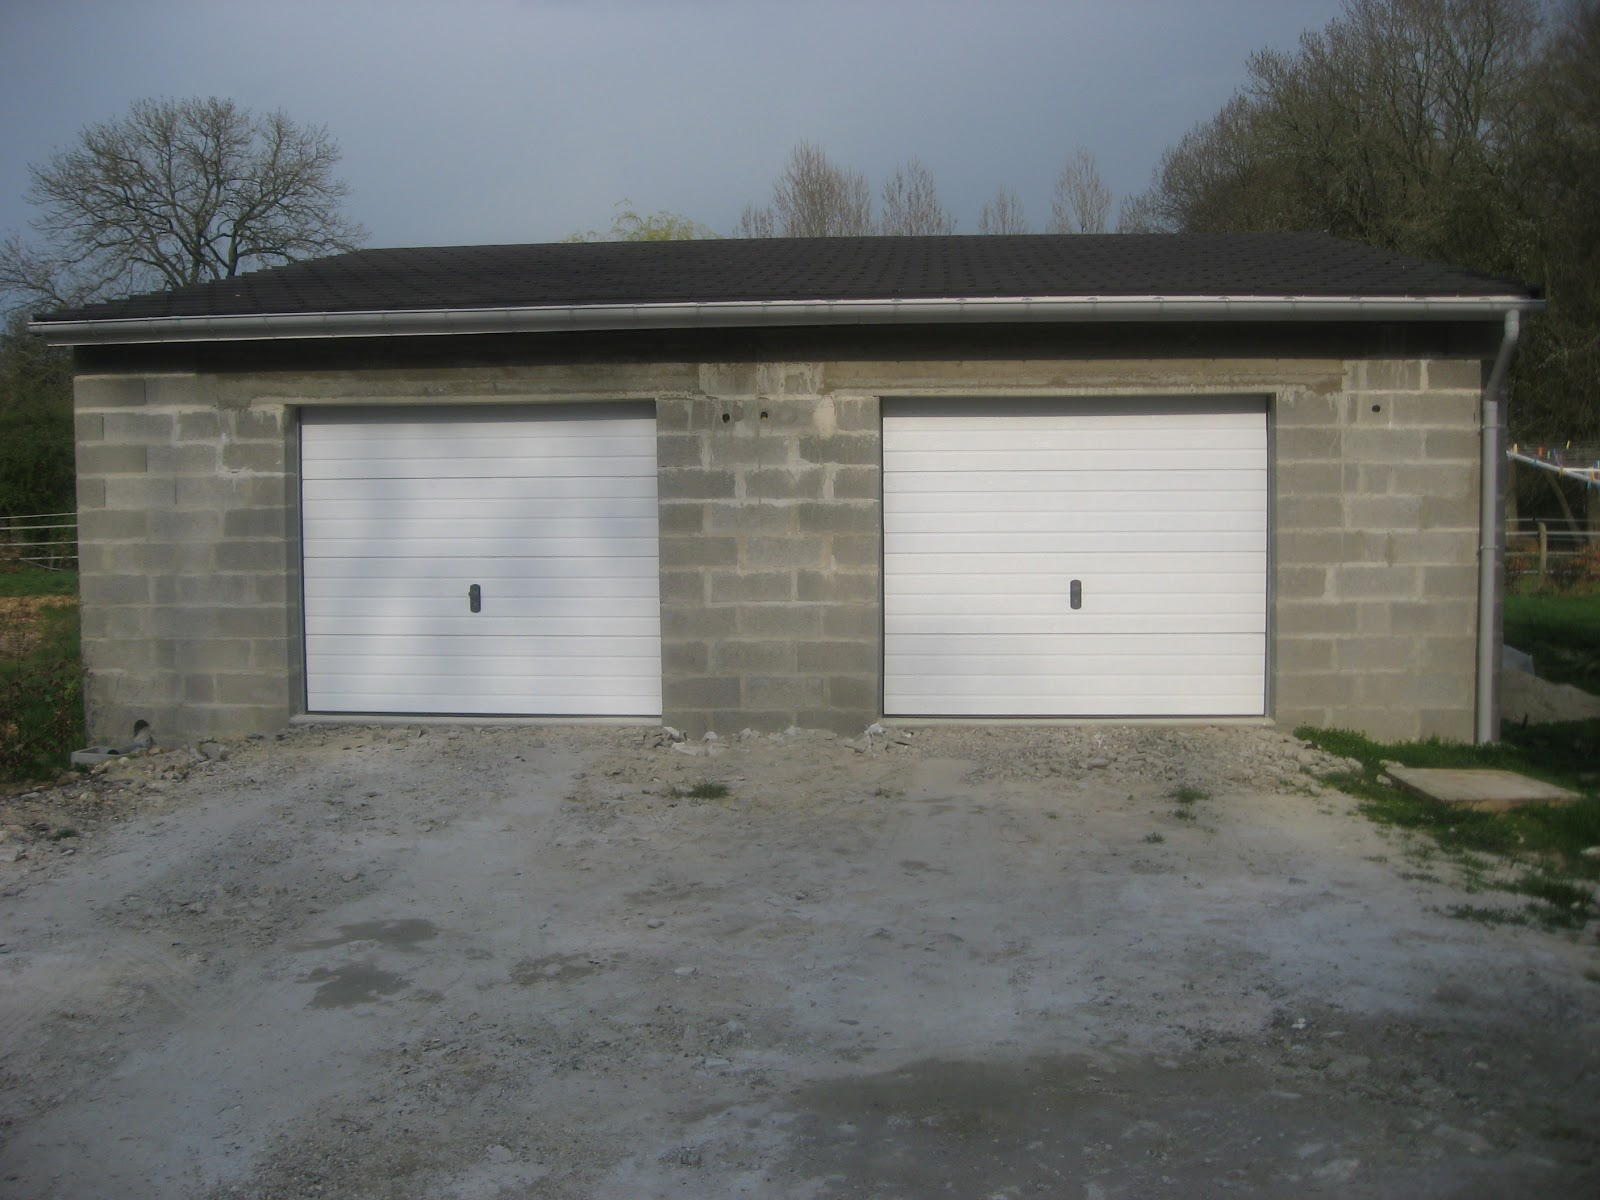 Maison de j r me et laetitia construction du garage double for Construction garage parpaing plan